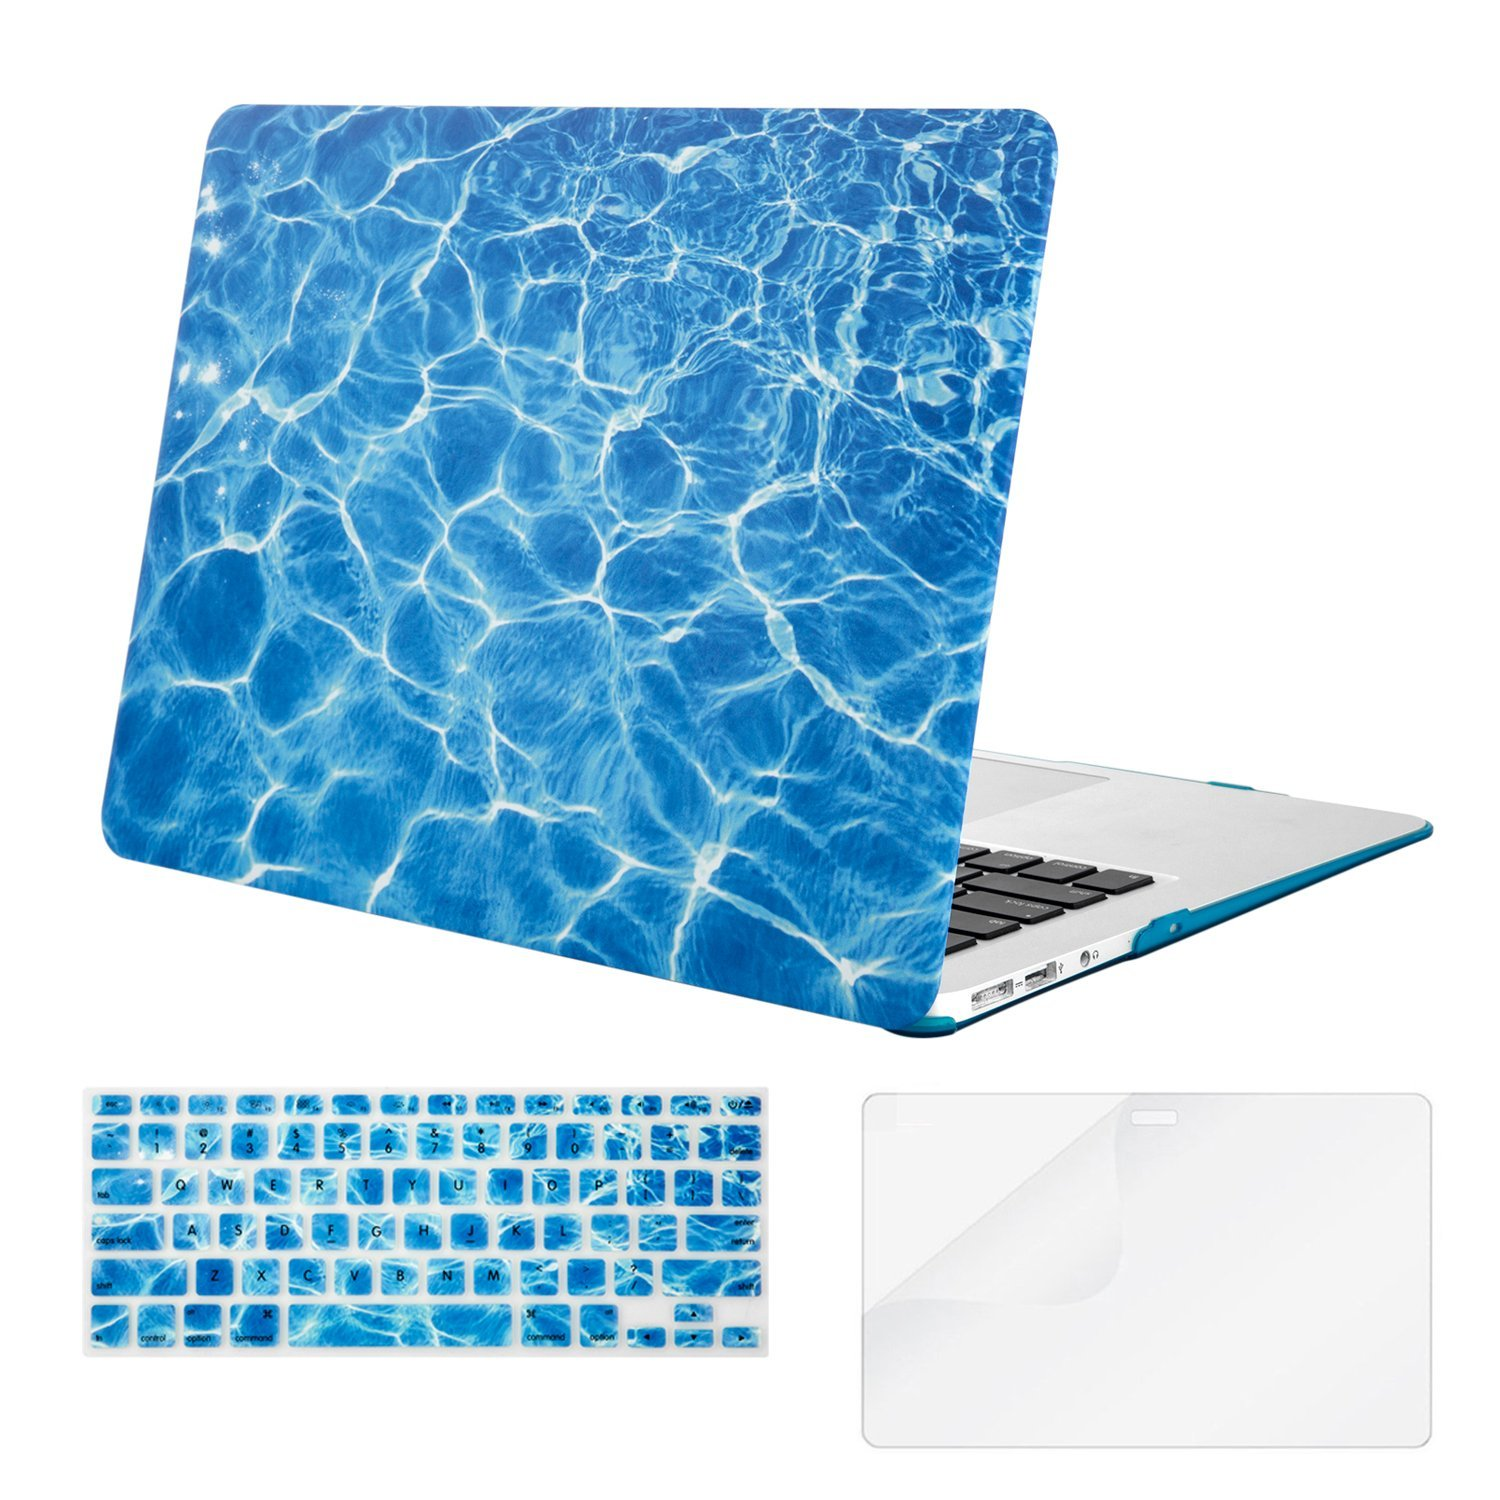 Mosiso Plastic Hard Case with Keyboard Cover with Screen Protector for MacBook Air 13 inch (Model: A1369 and A1466 ), Water Ripples Blue